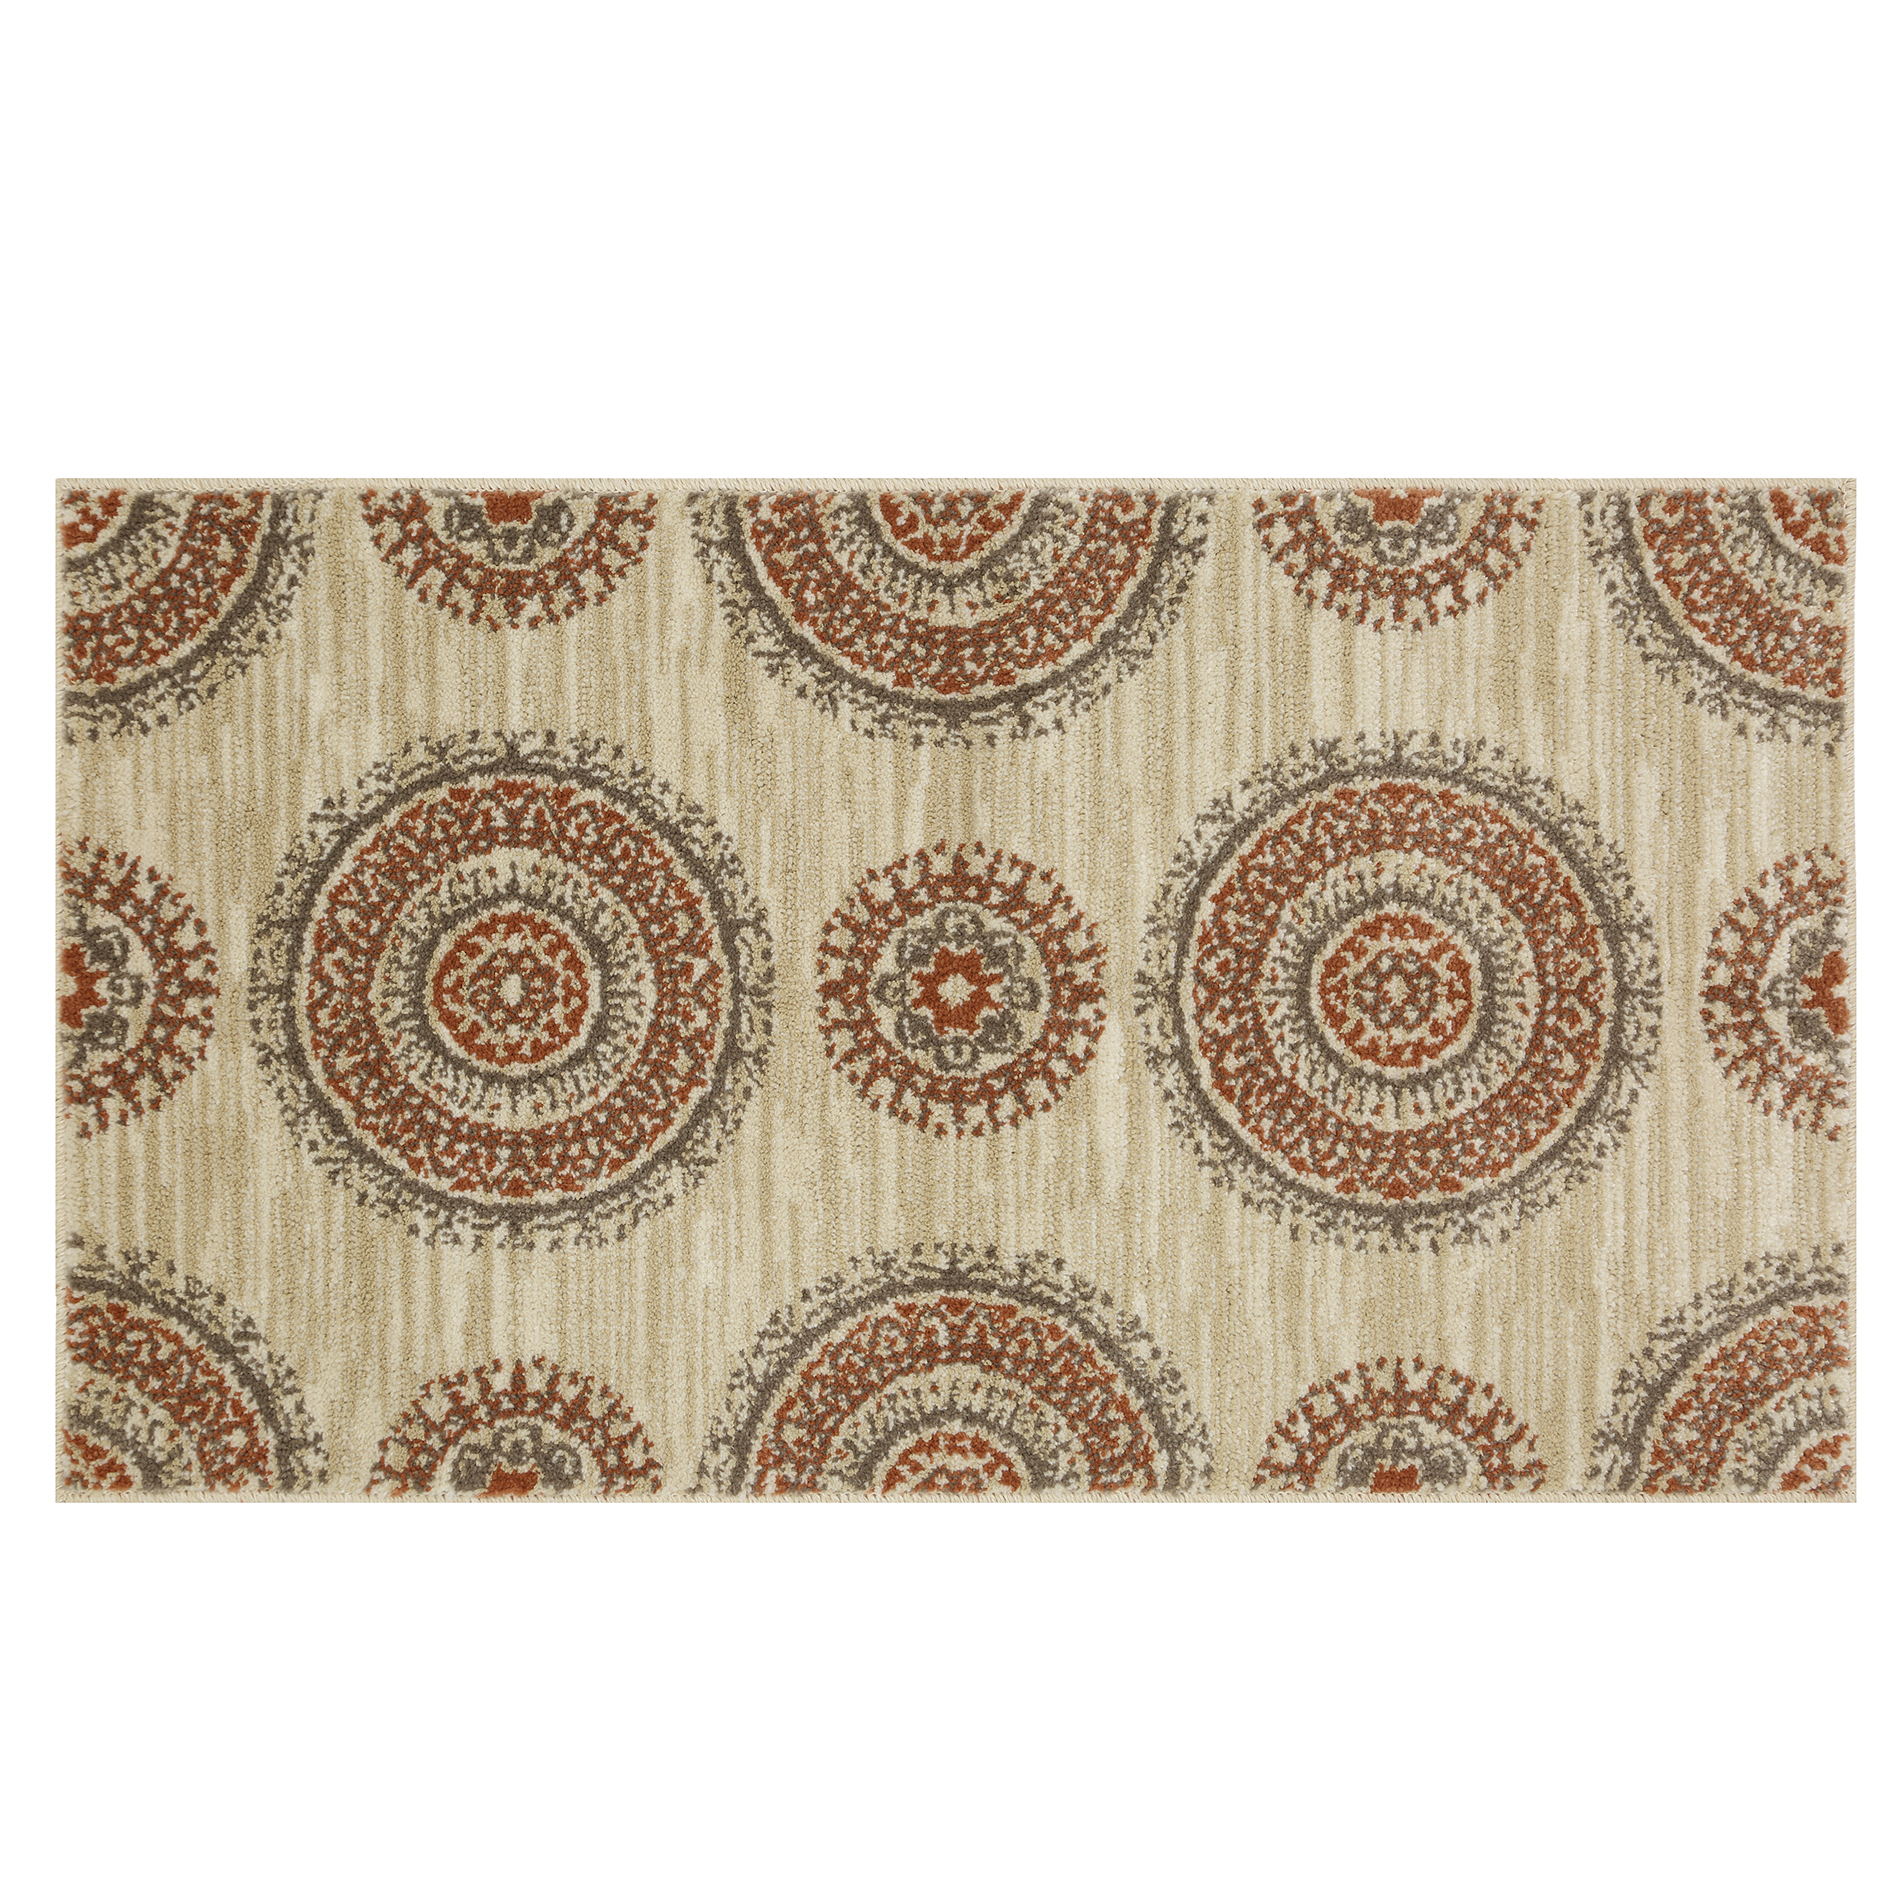 Home Decor On Clearance   Kmart Mohawk Sand Stone Work Area Rug 60